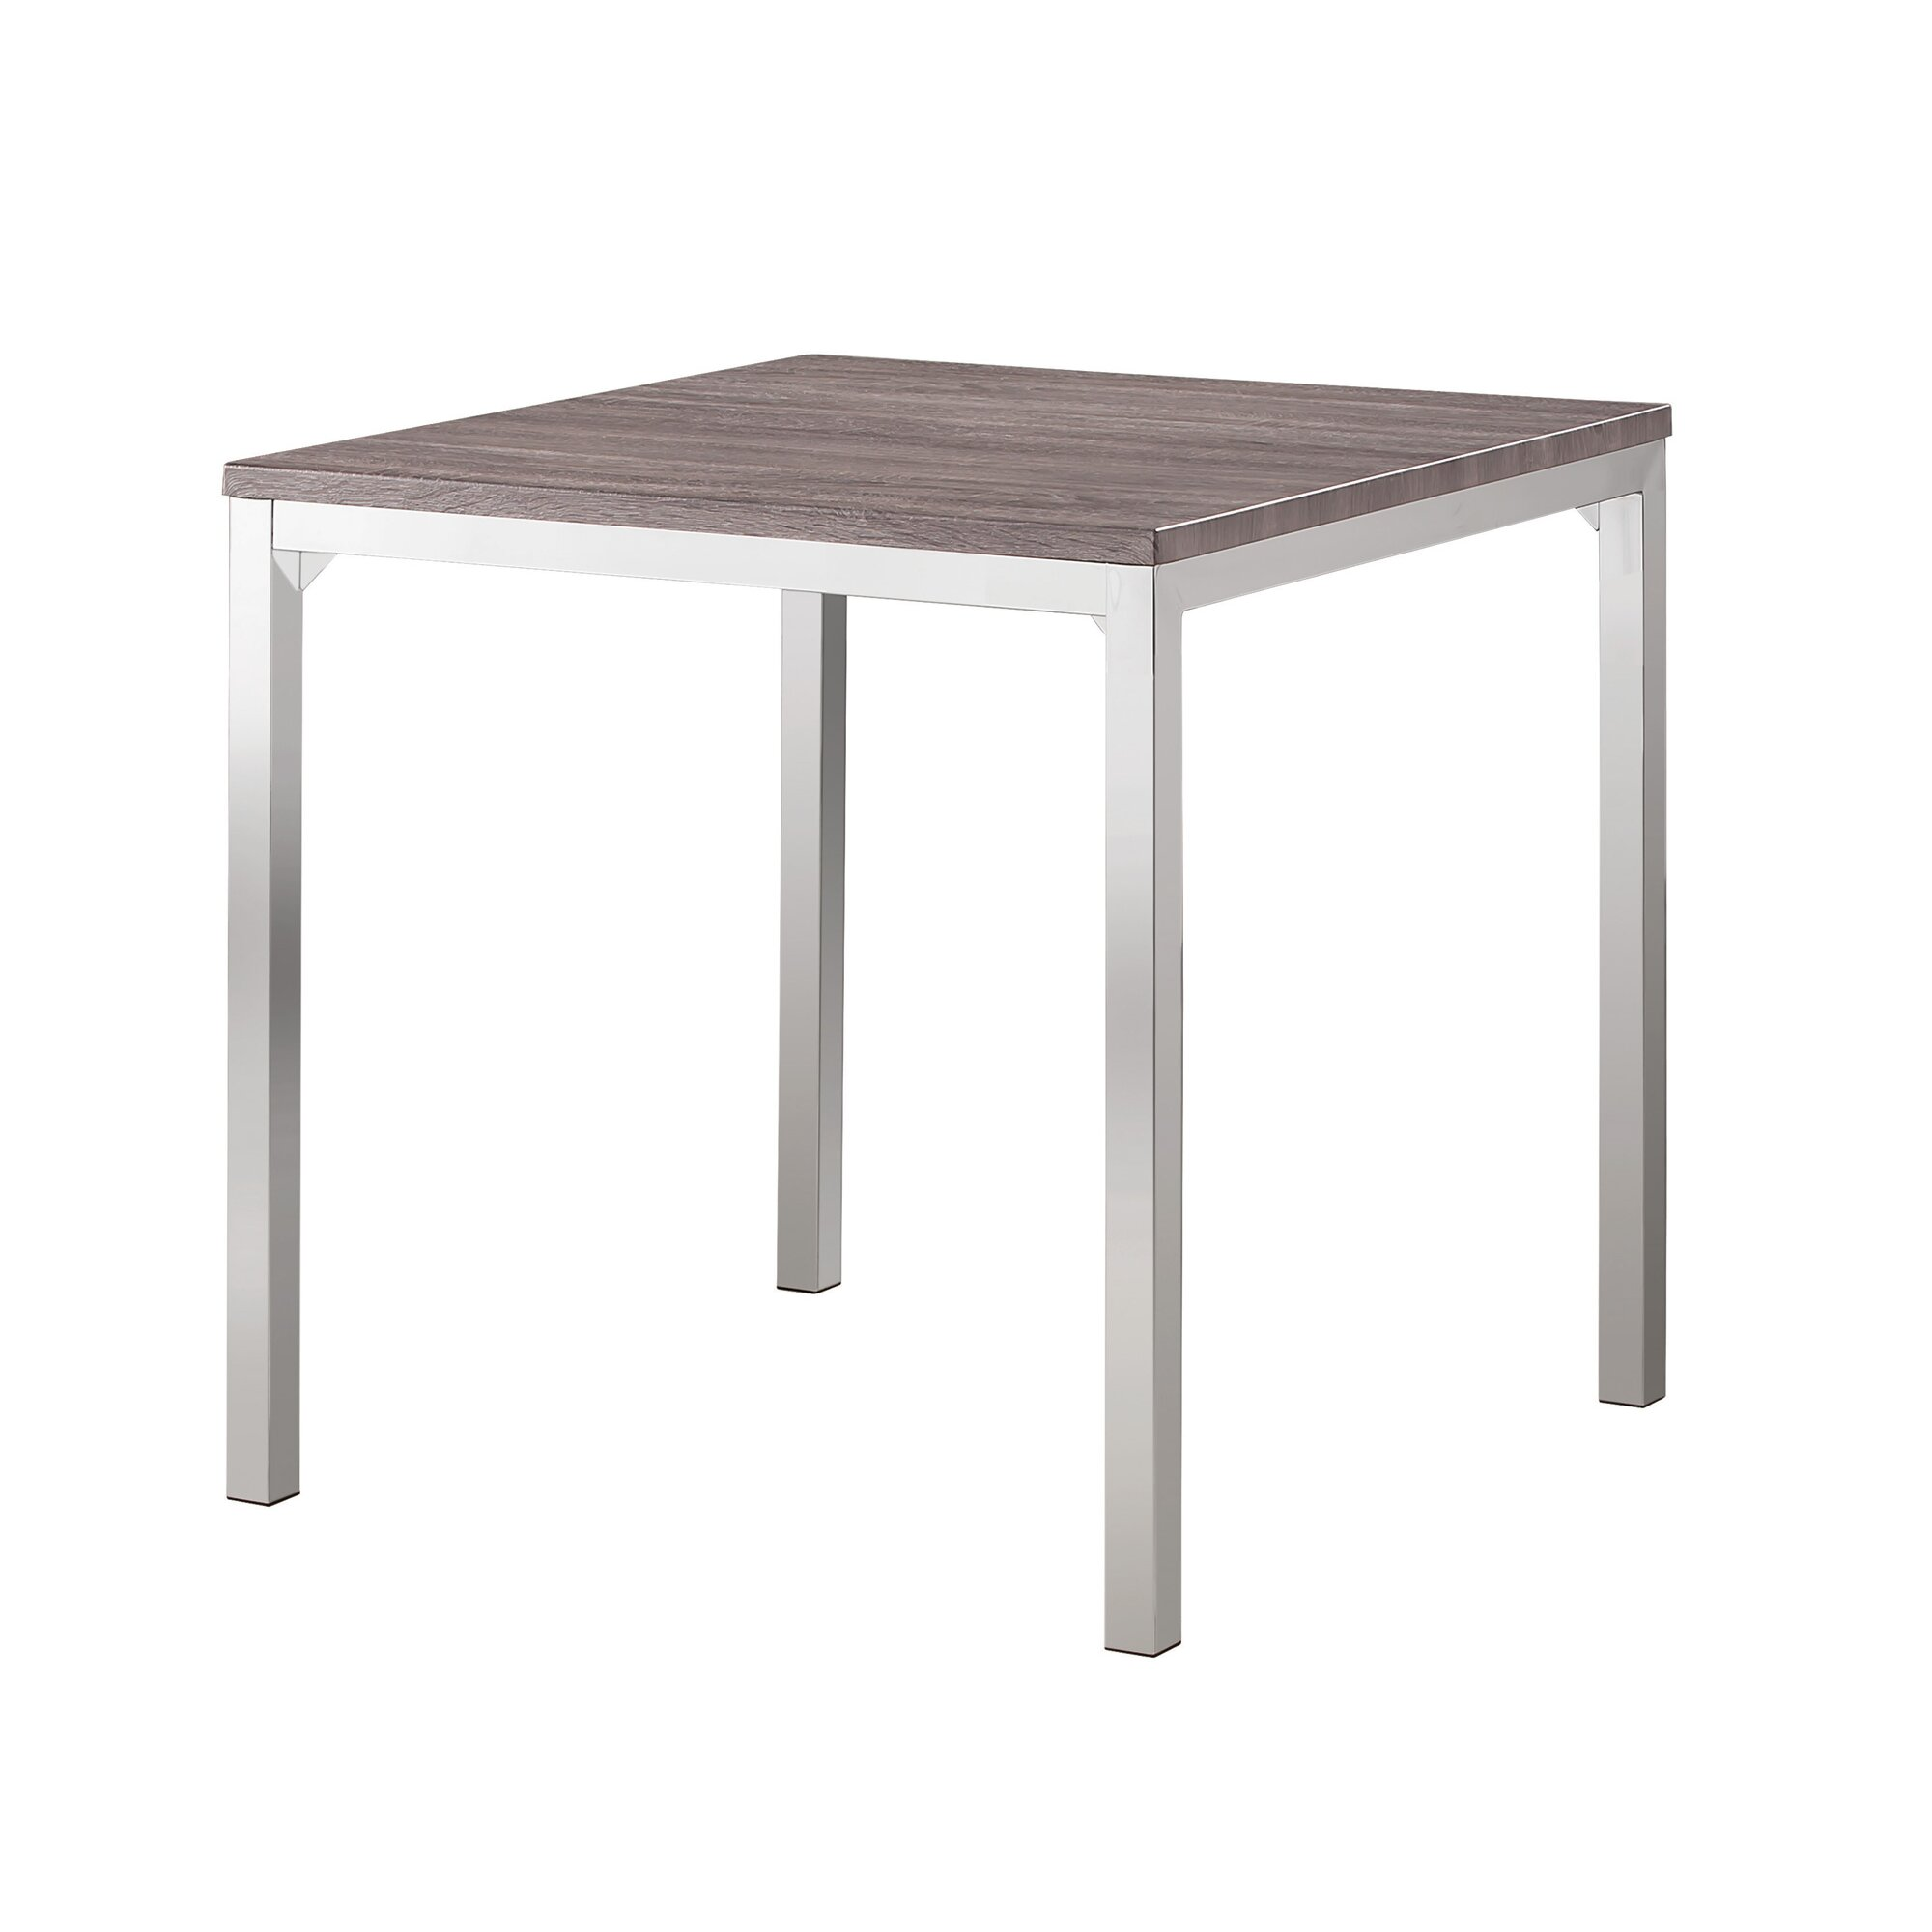 Dining Table Standard Coffee Height Cm Mondial Adjule